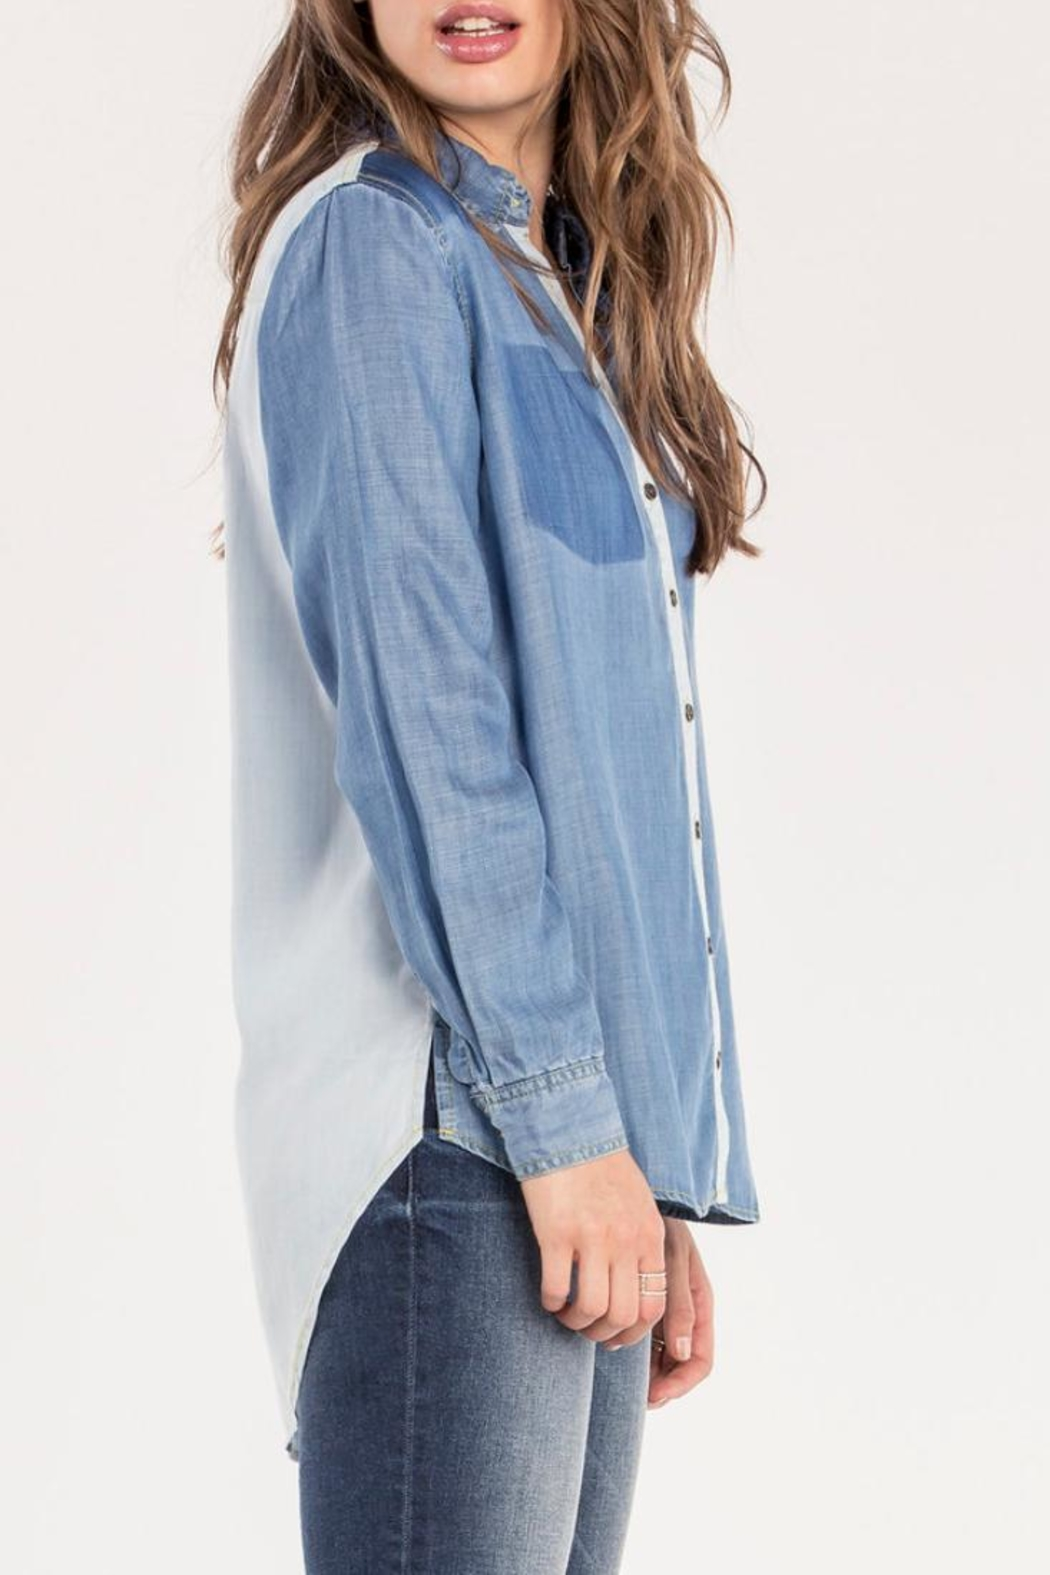 Miss Me Two Tone Chambray Top - Front Full Image